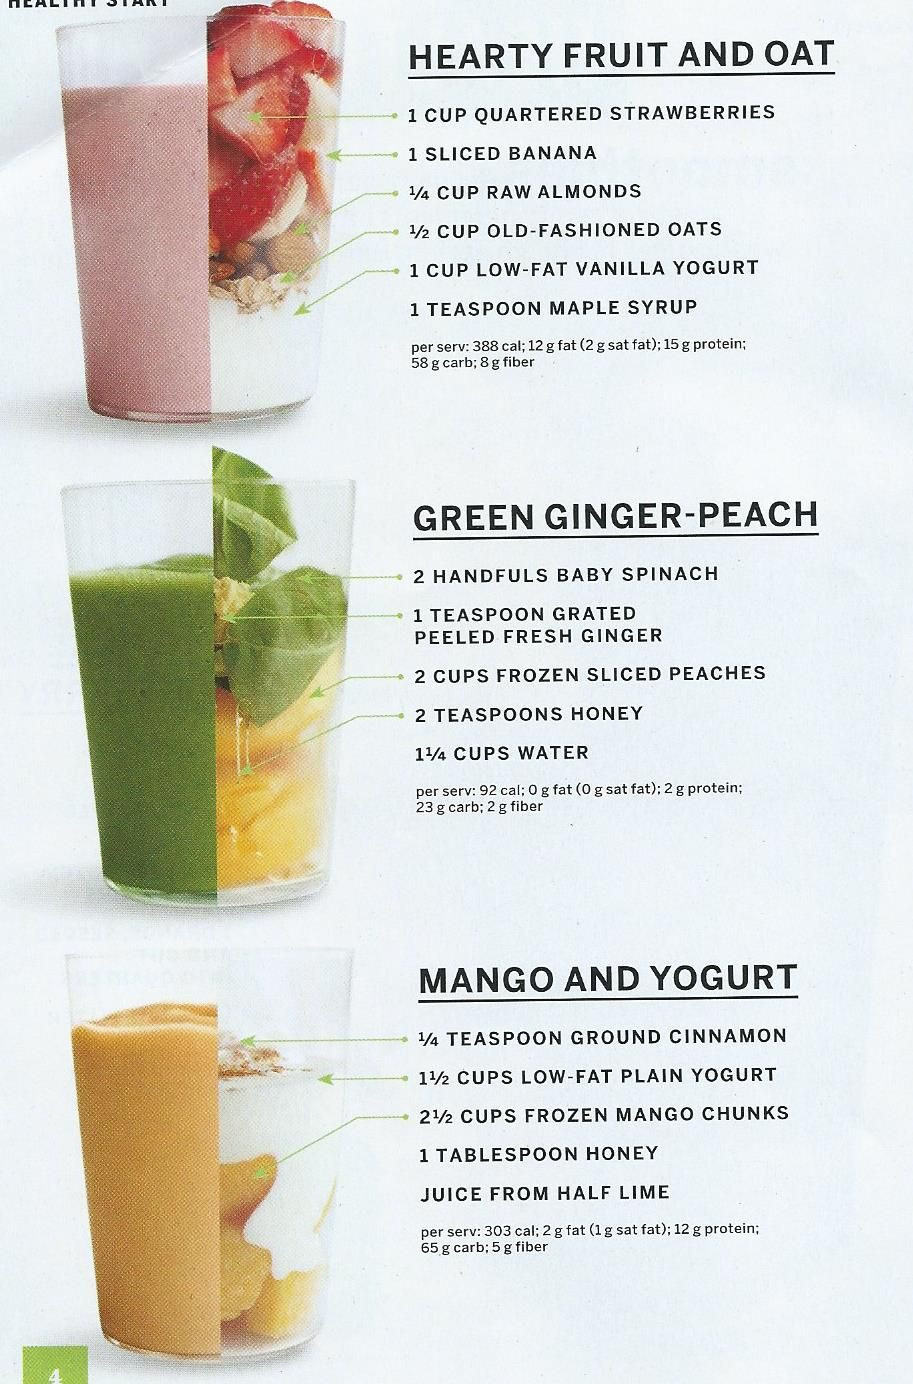 Healthy Smoothies Recipe  FREE 12 Day Green Smoothie E Course